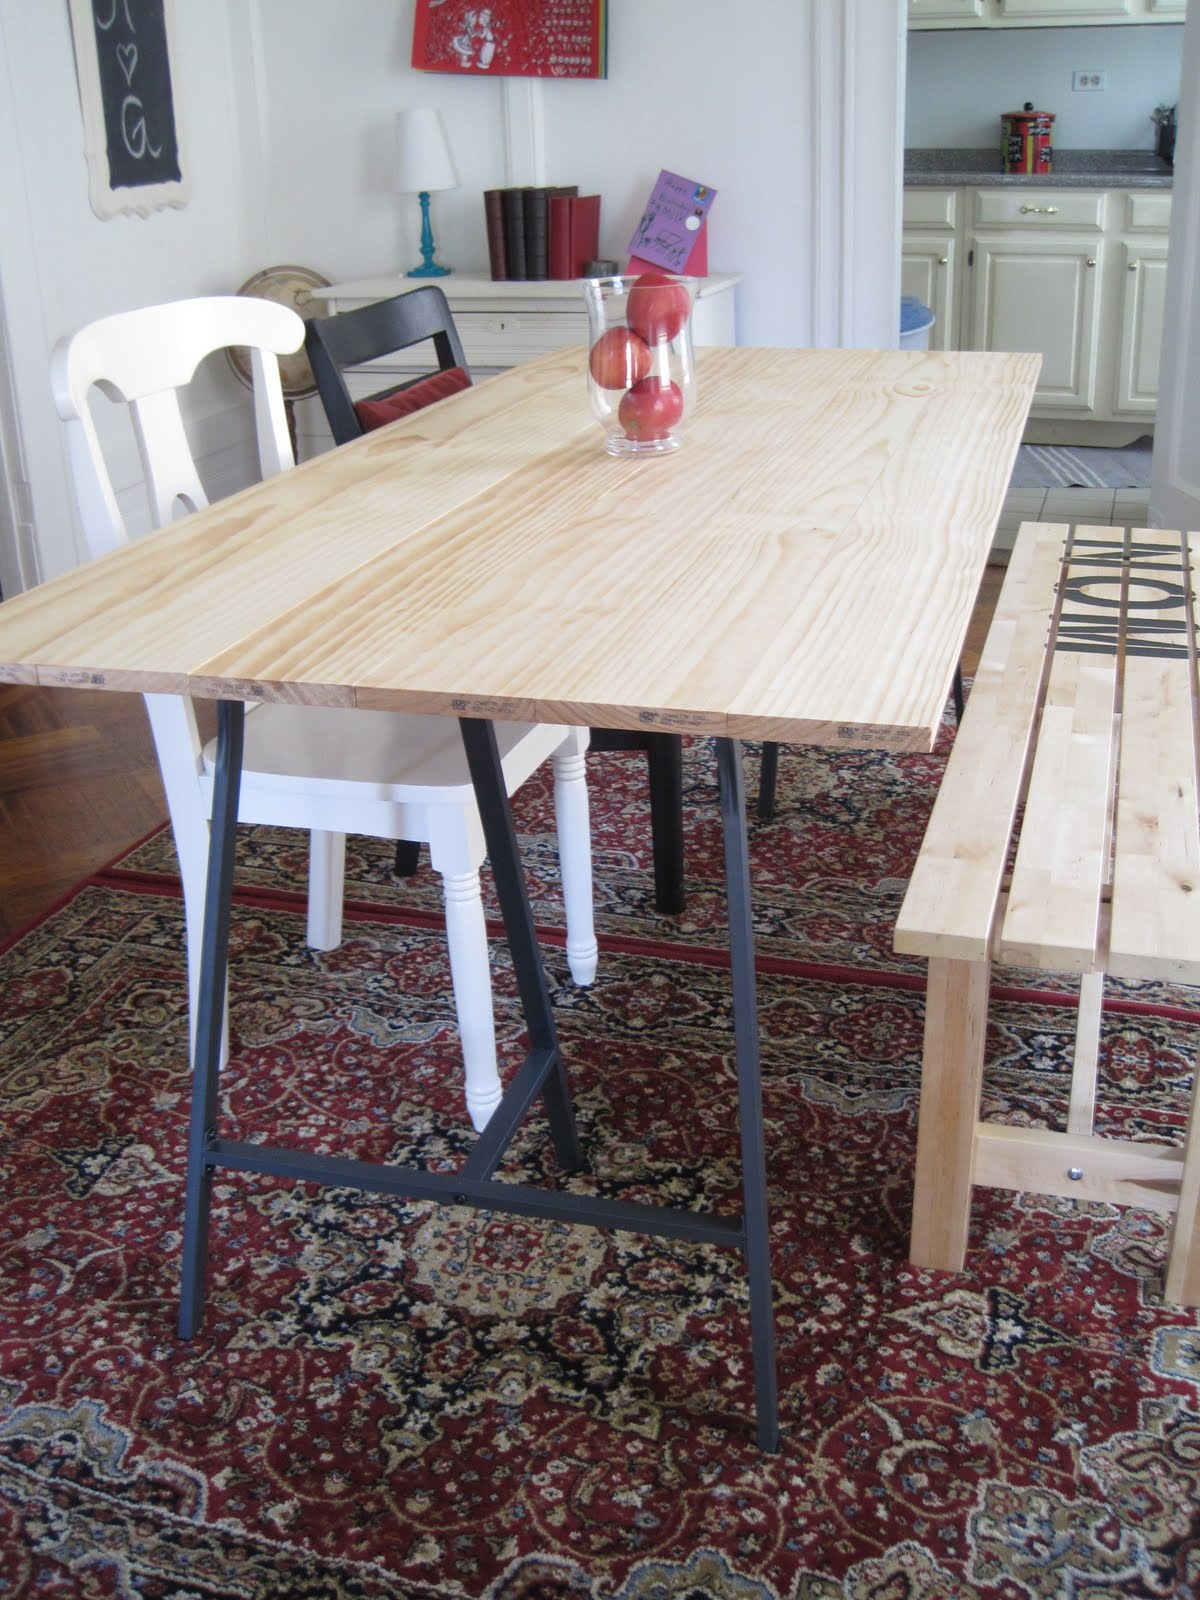 Kitchen Of The Week A Diy Ikea Country Kitchen For Two: Harlem Home: How To: Build A Dining Room Table For $100